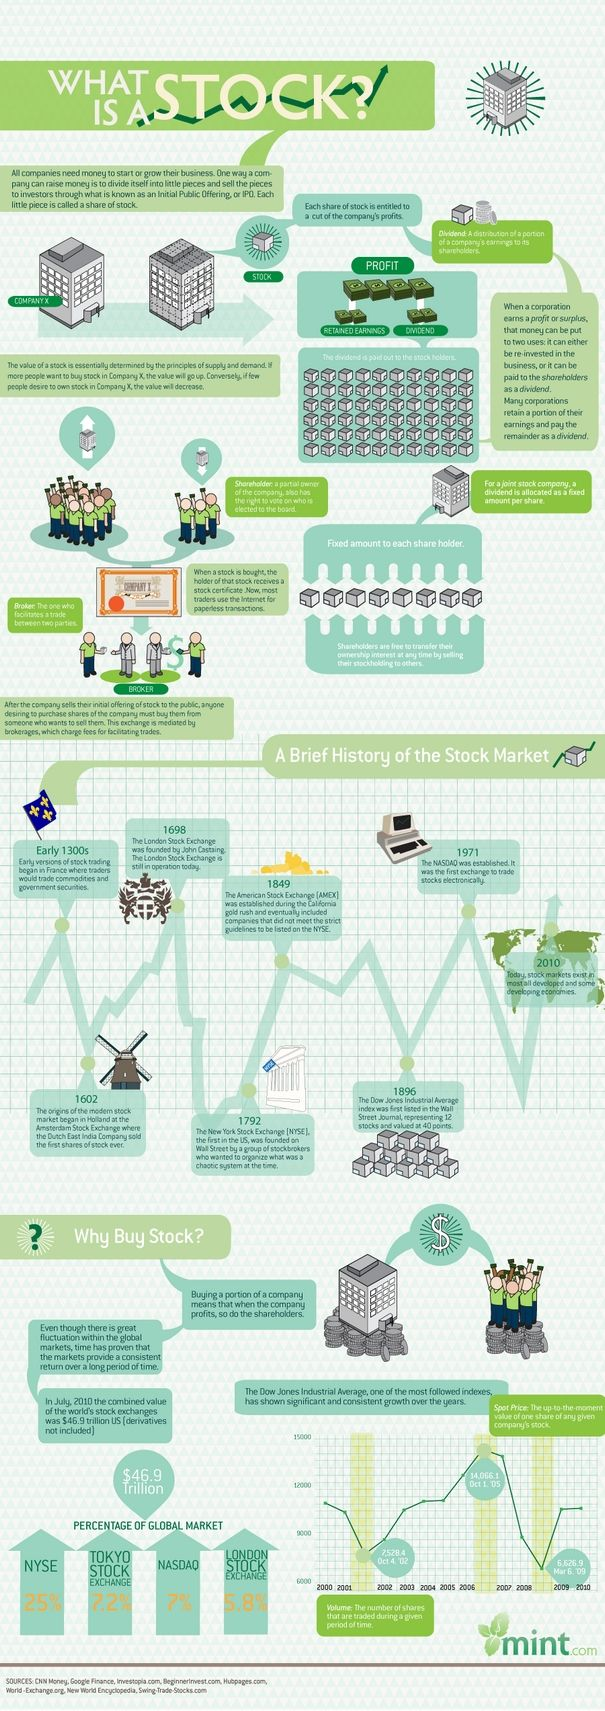 How to design stock trading system